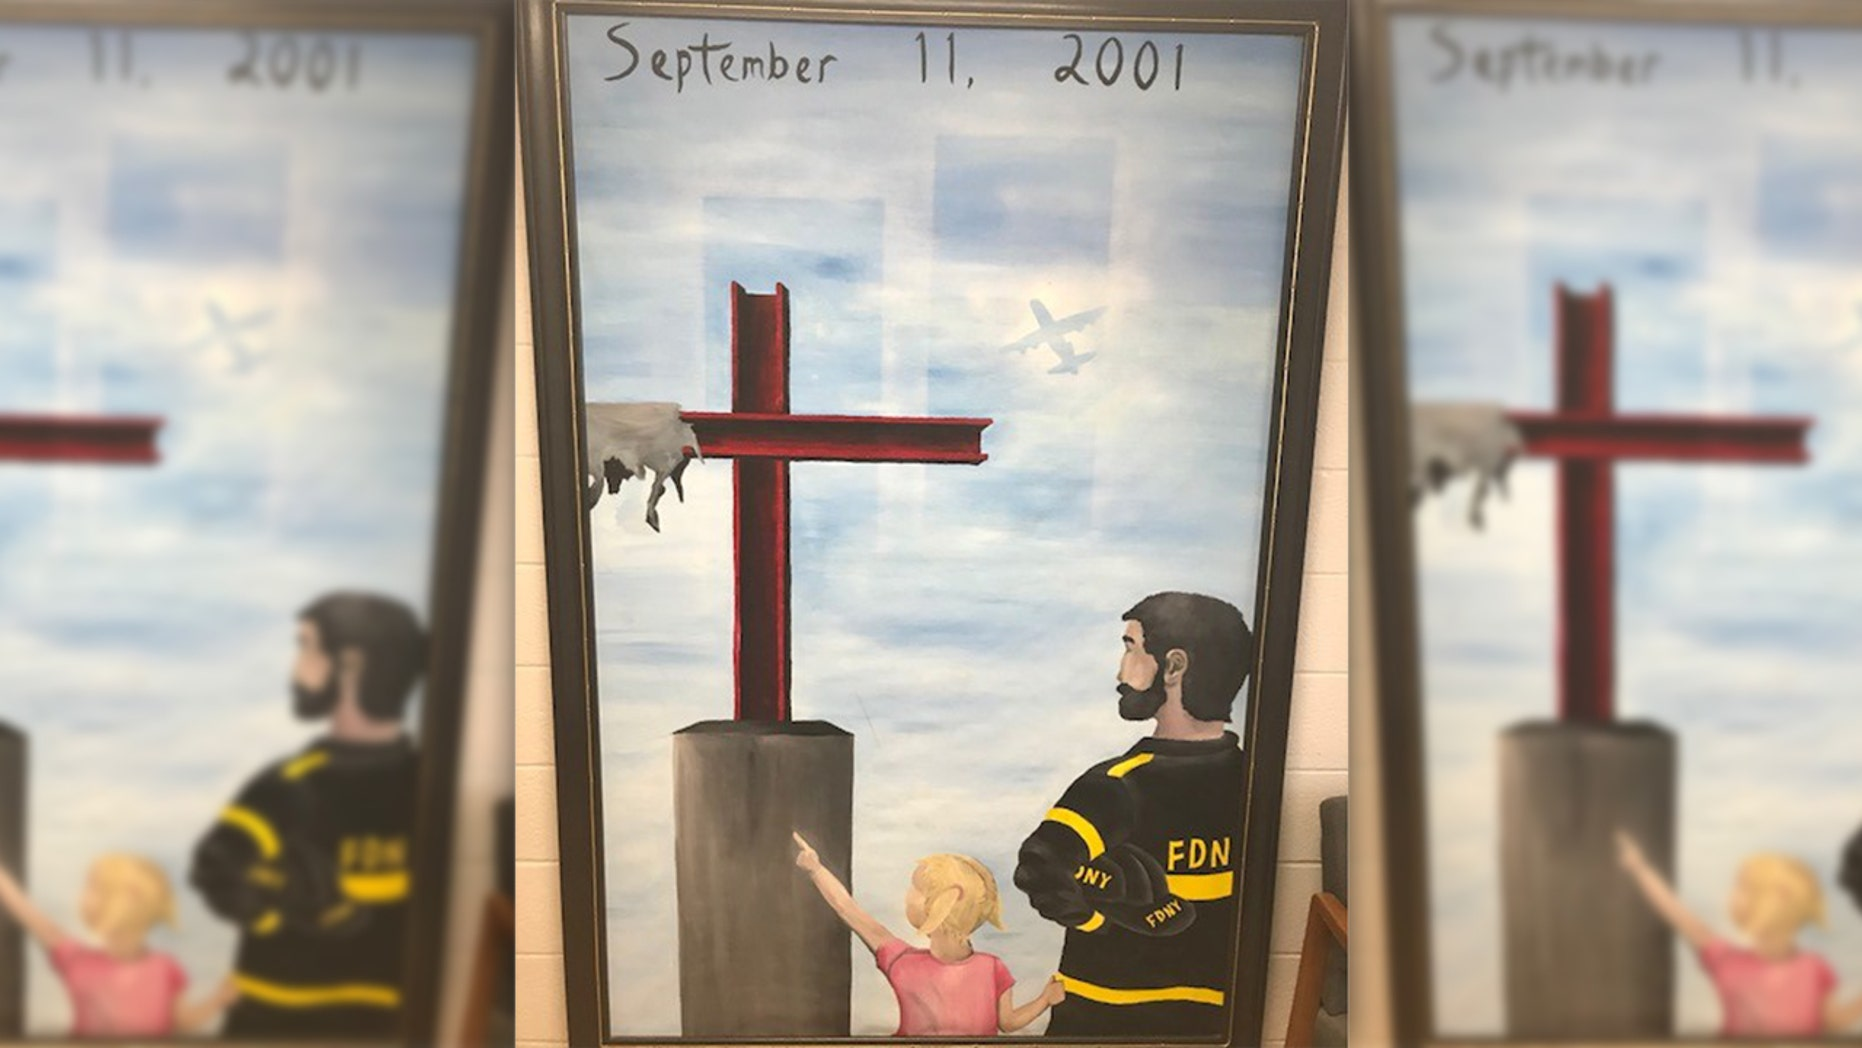 The Freedom From Religion Foundation filed a complaint against Camden County in Missouri for having a 9/11 cross mural, which the group claims is unconstitutional.